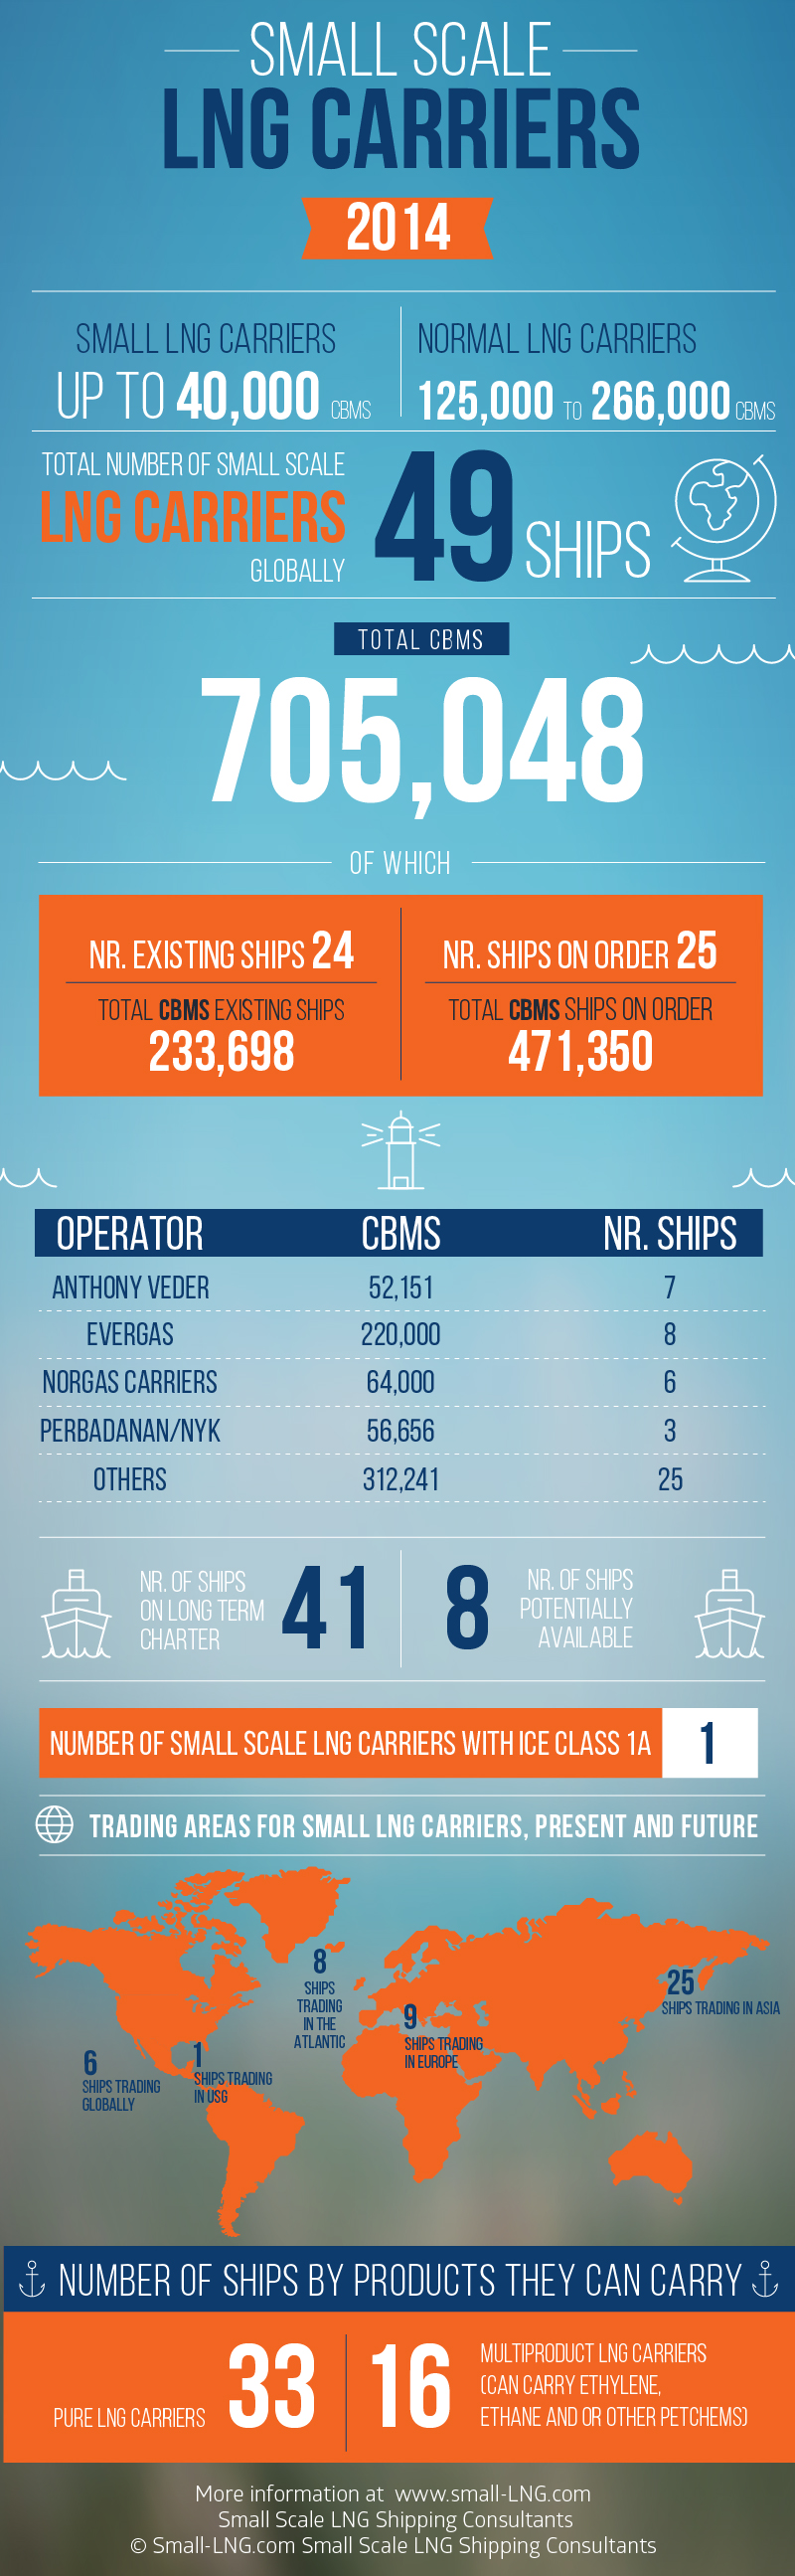 Infographic: Small Scale LNG Carriers 2014